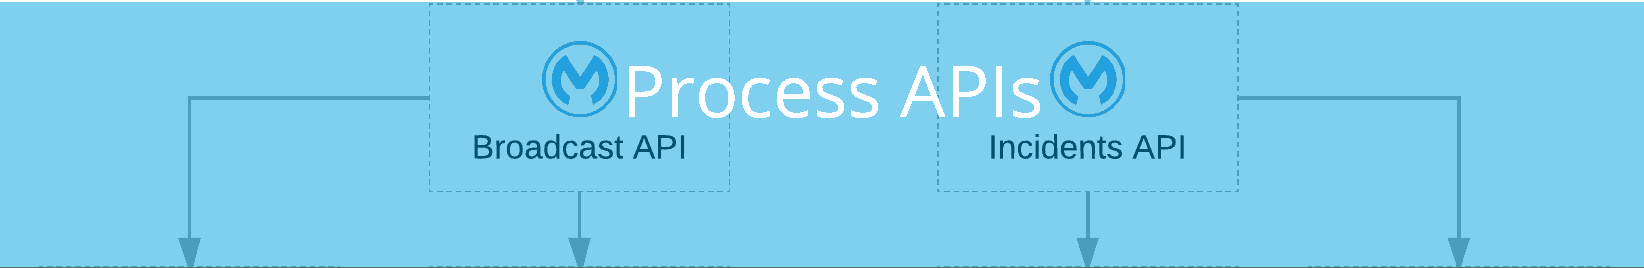 what is a process api